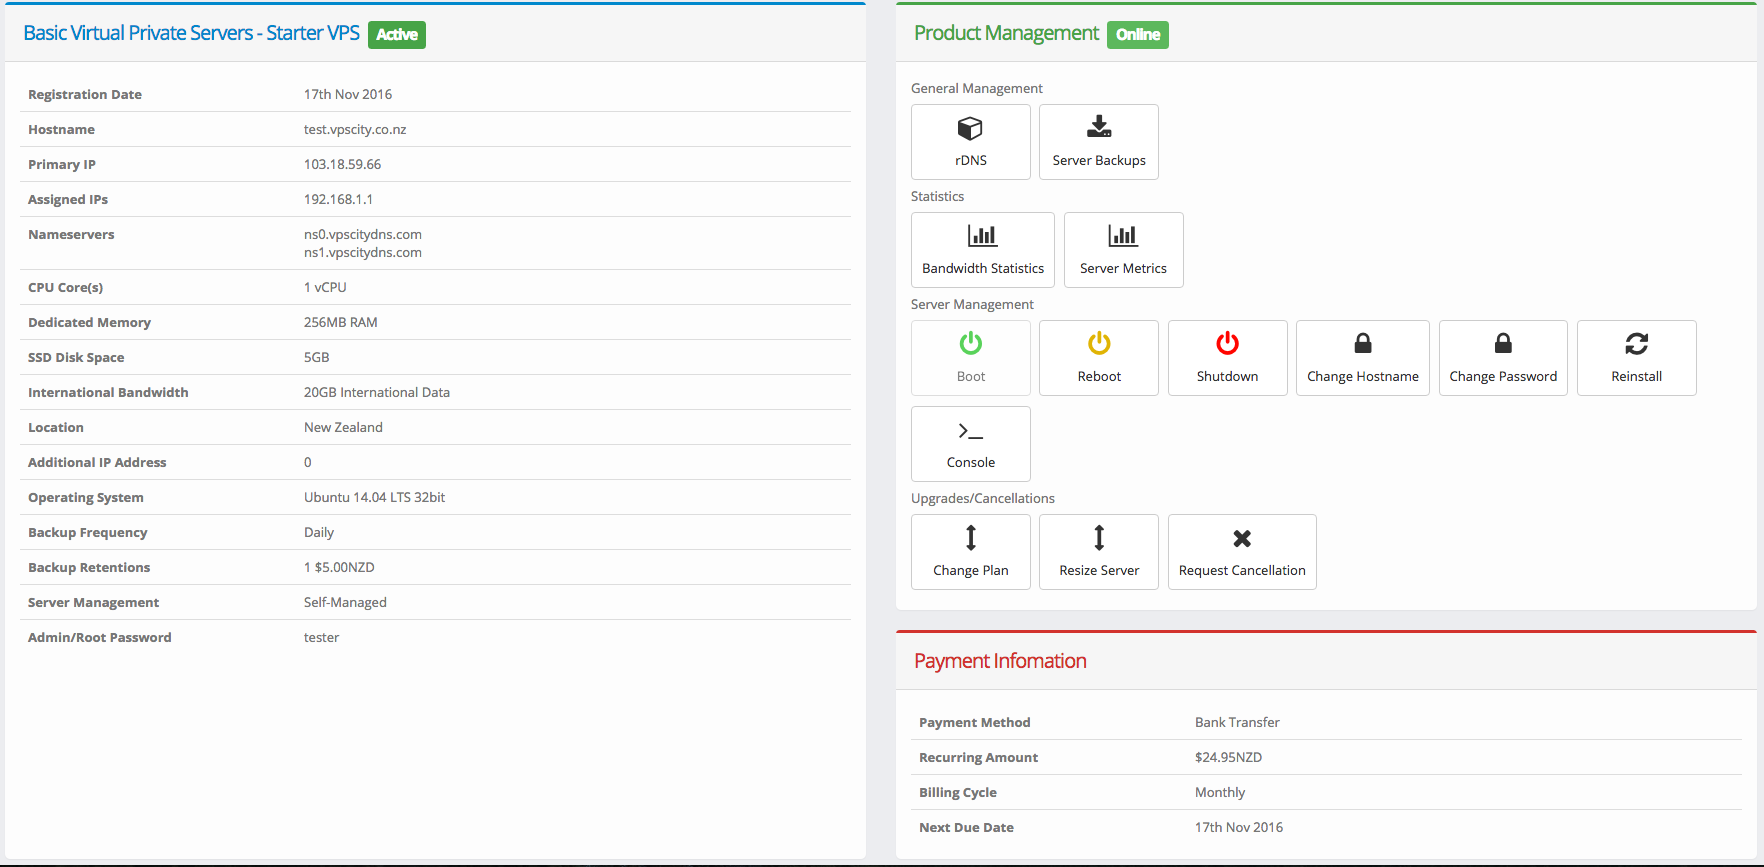 Server Management Features